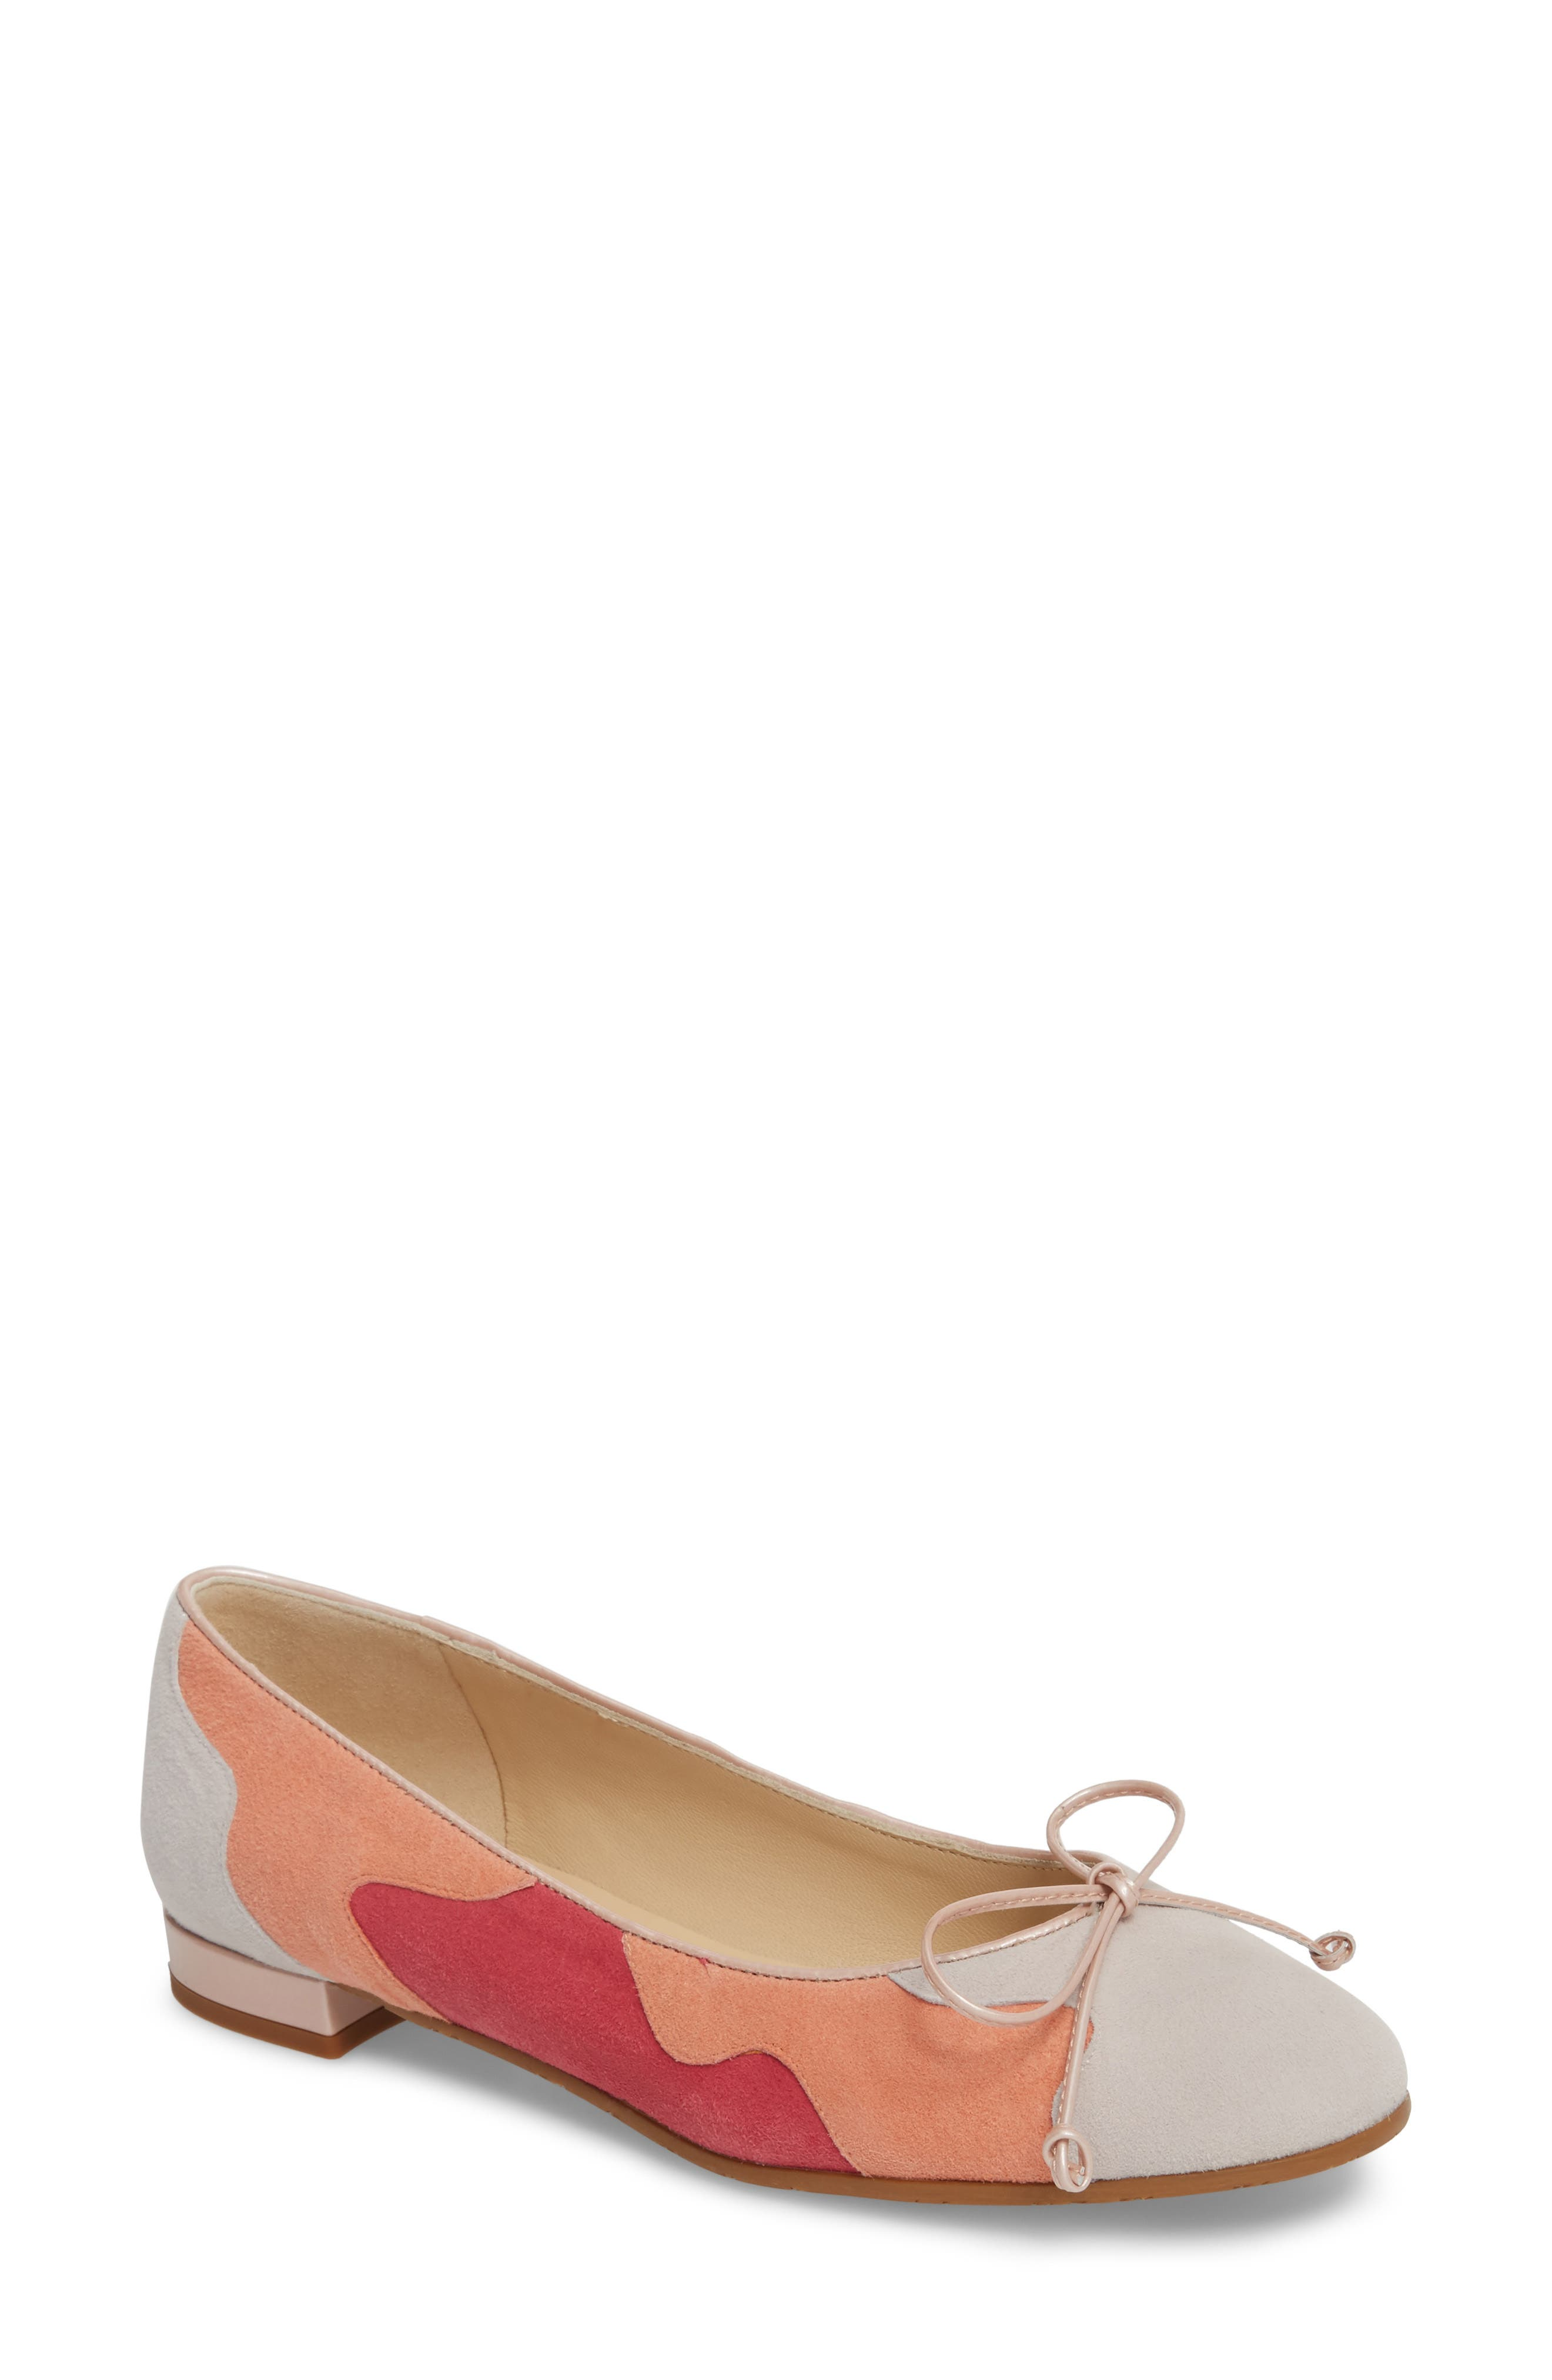 Ginevra Flat,                         Main,                         color, Beige Suede